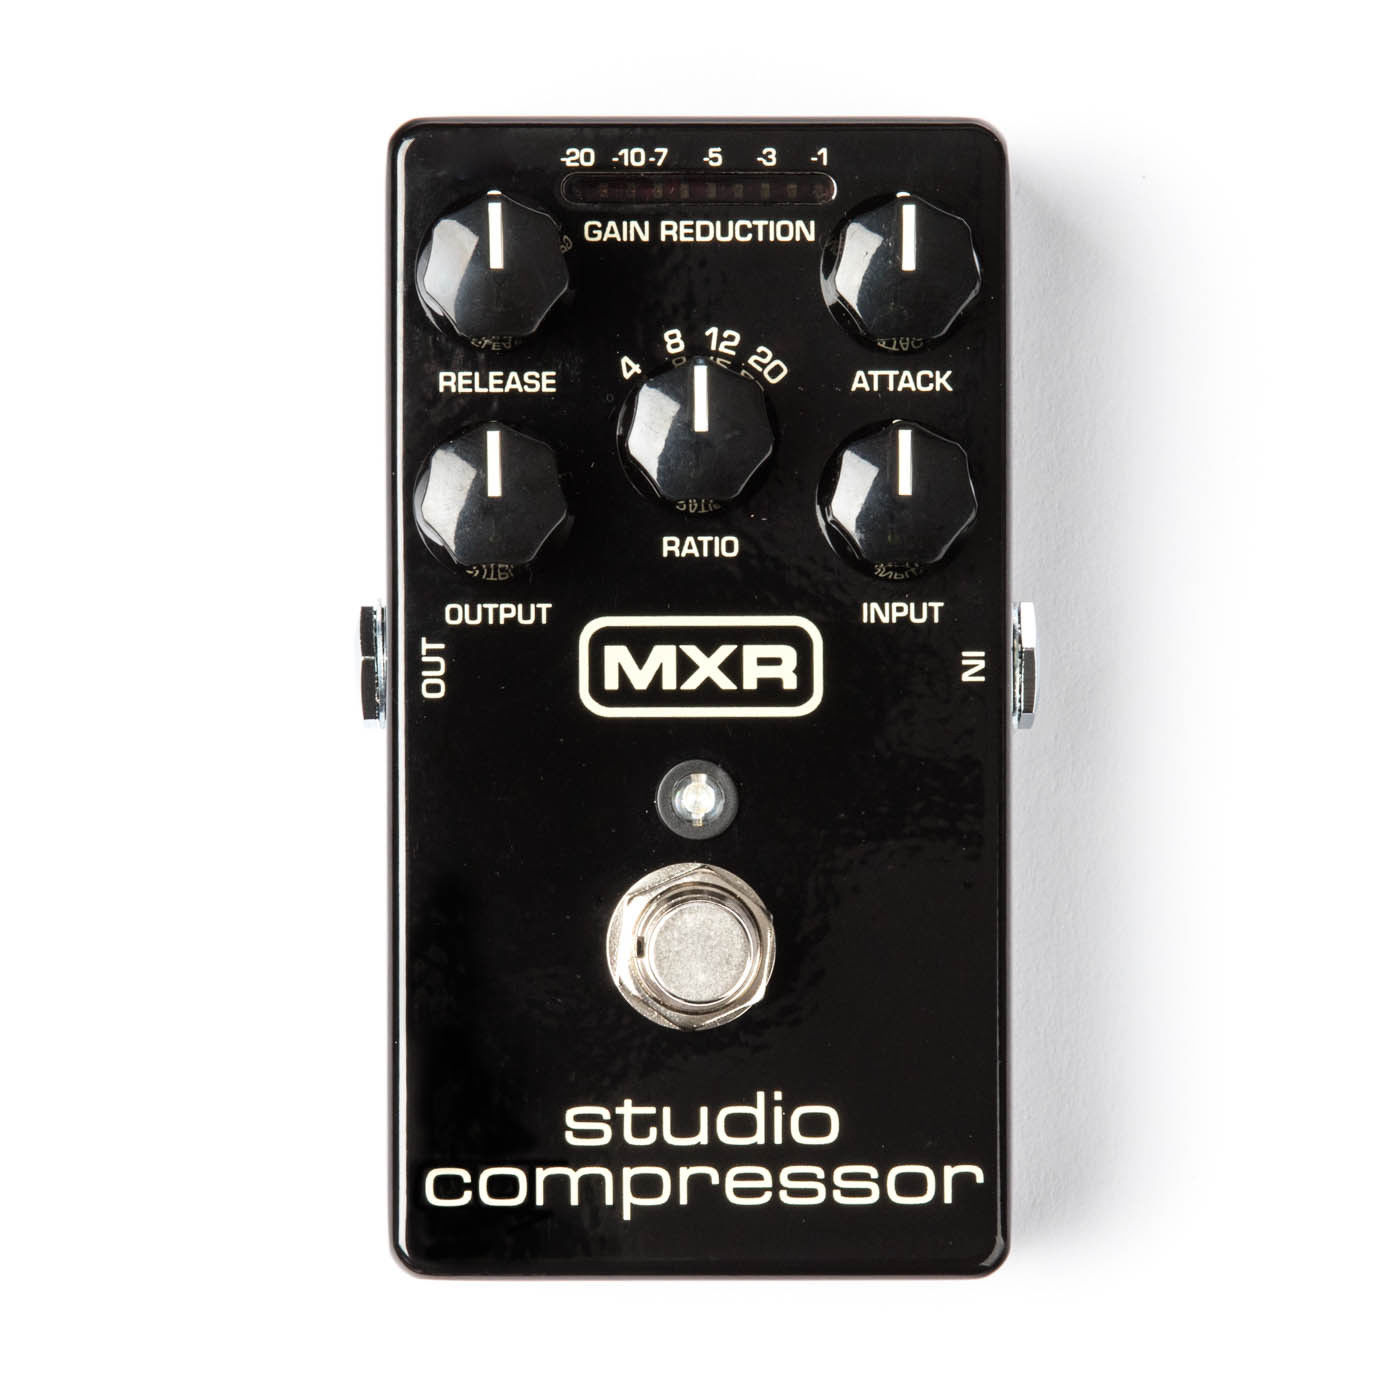 new dunlop mxr m76 studio compressor la 2a 1176 compression effects pedal ebay. Black Bedroom Furniture Sets. Home Design Ideas